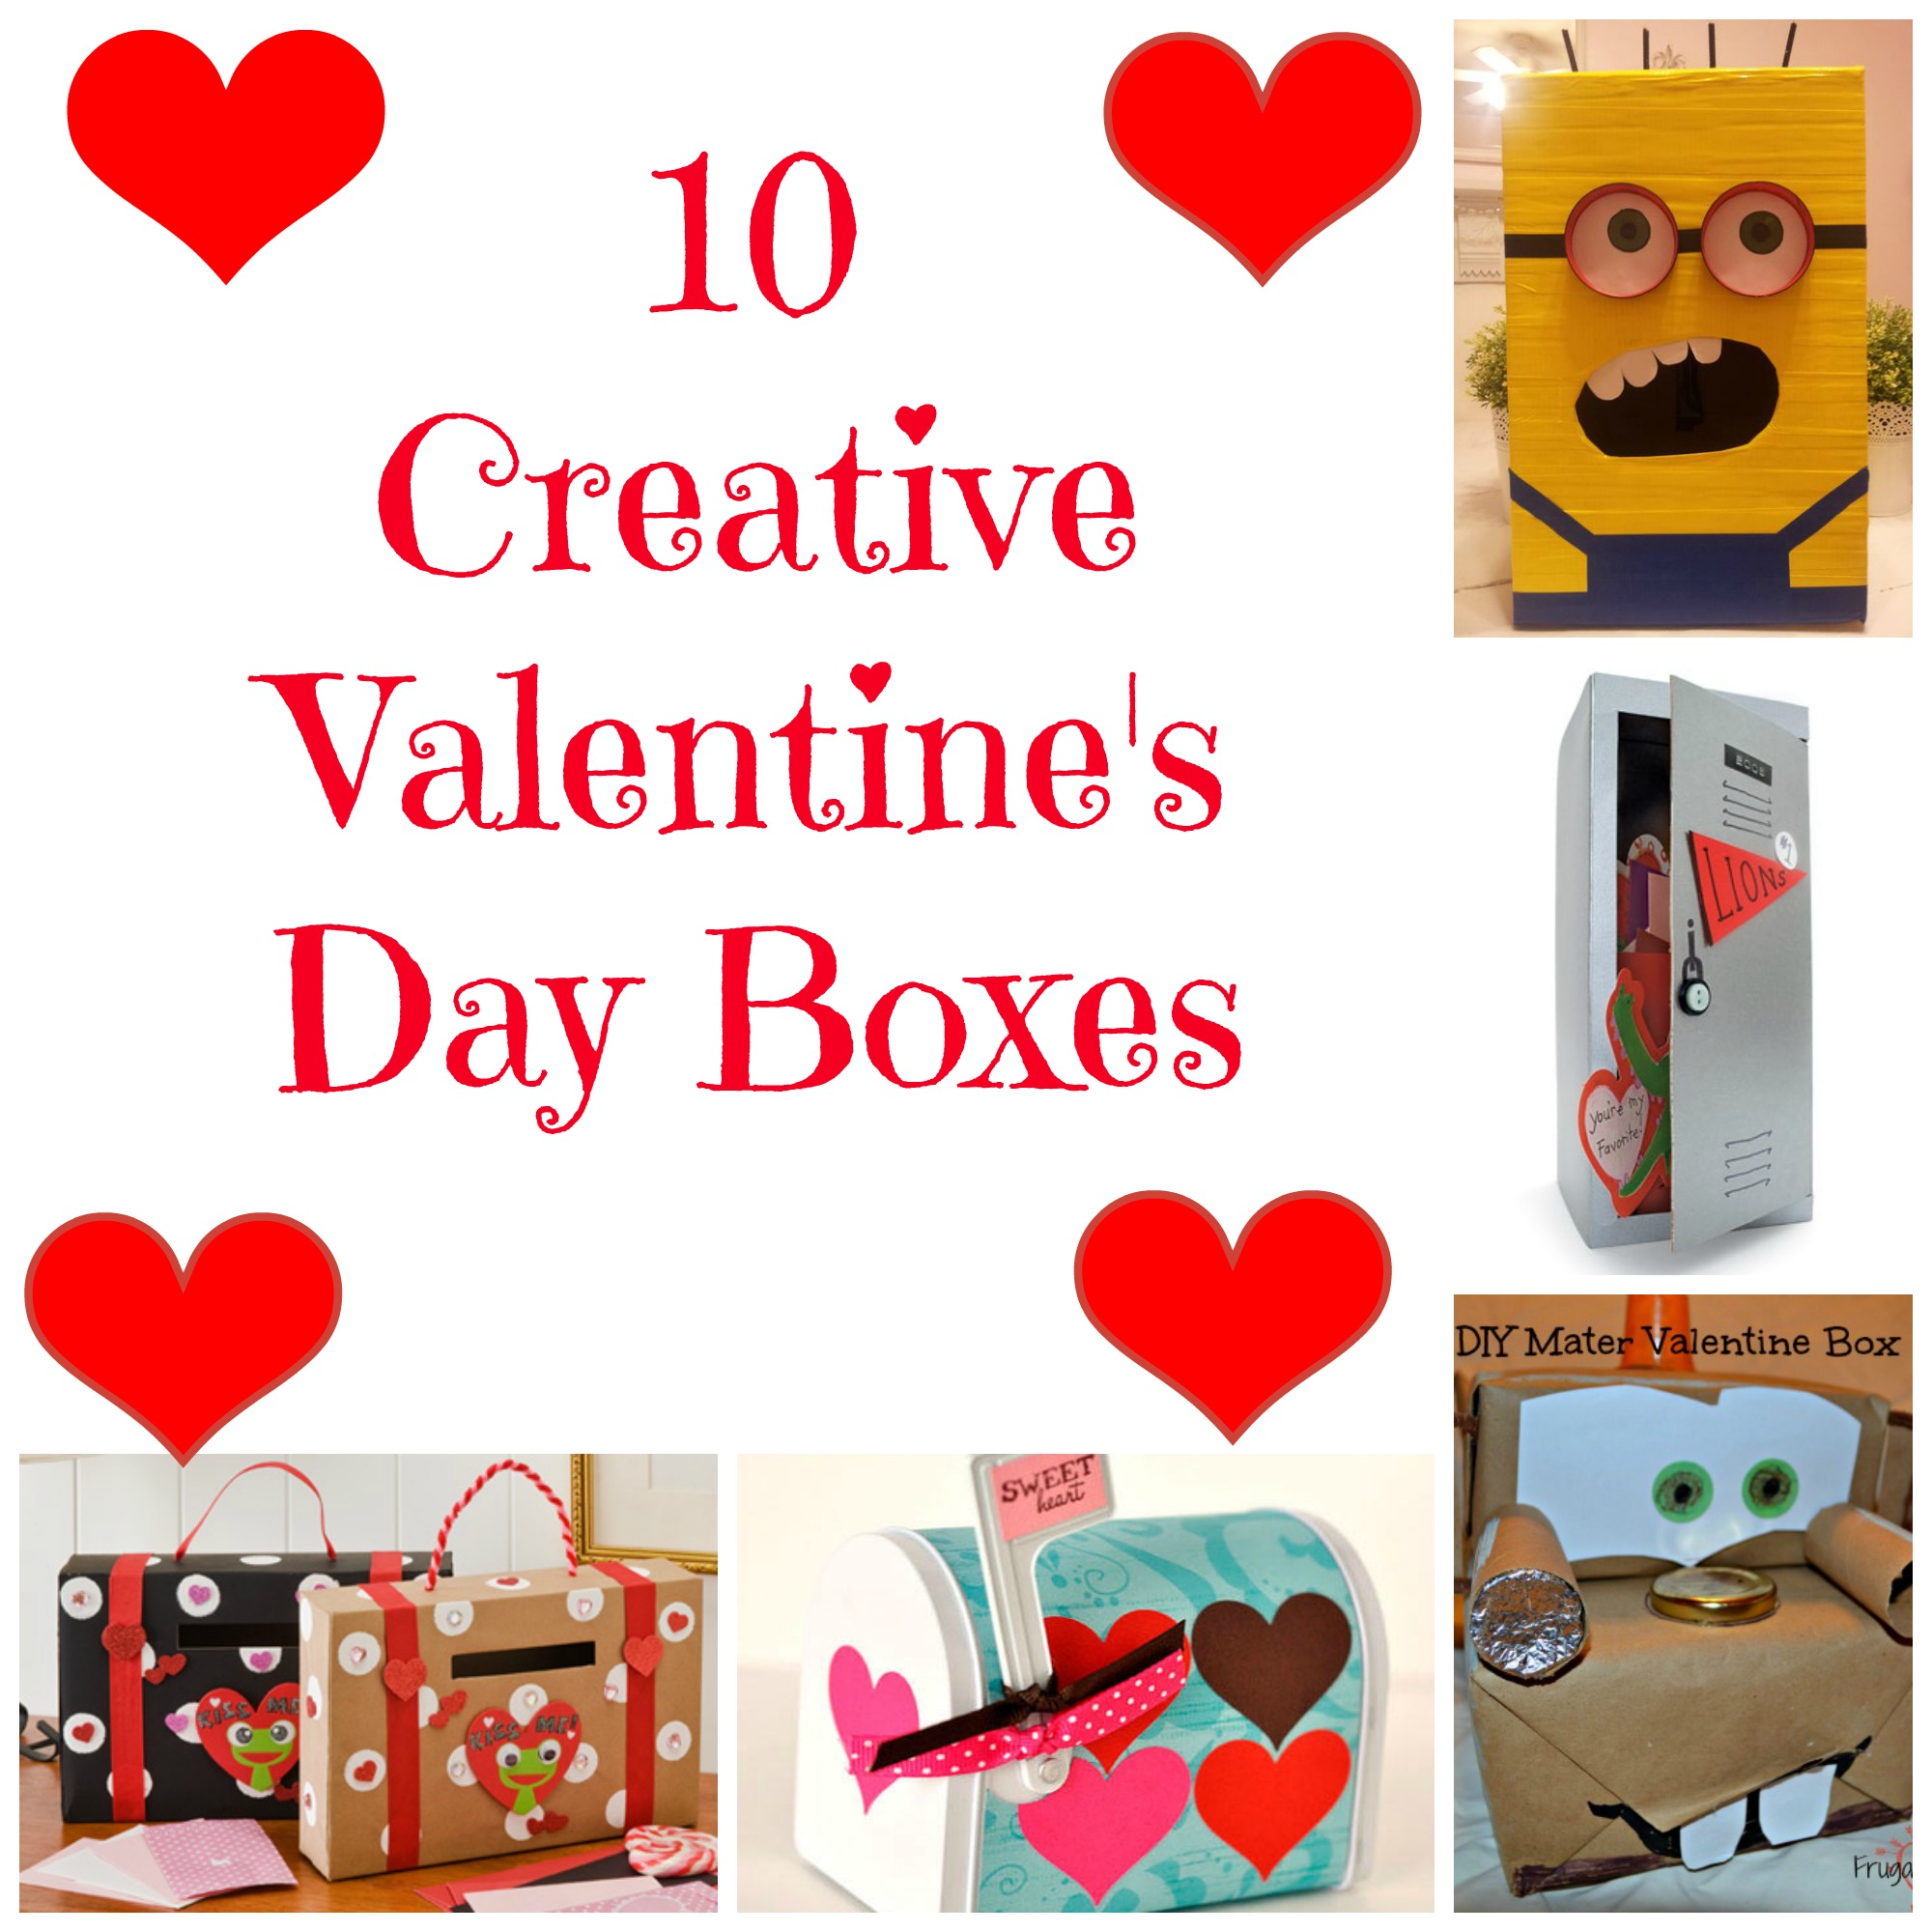 Creative ideas for valentines day at home - Home decor ideas